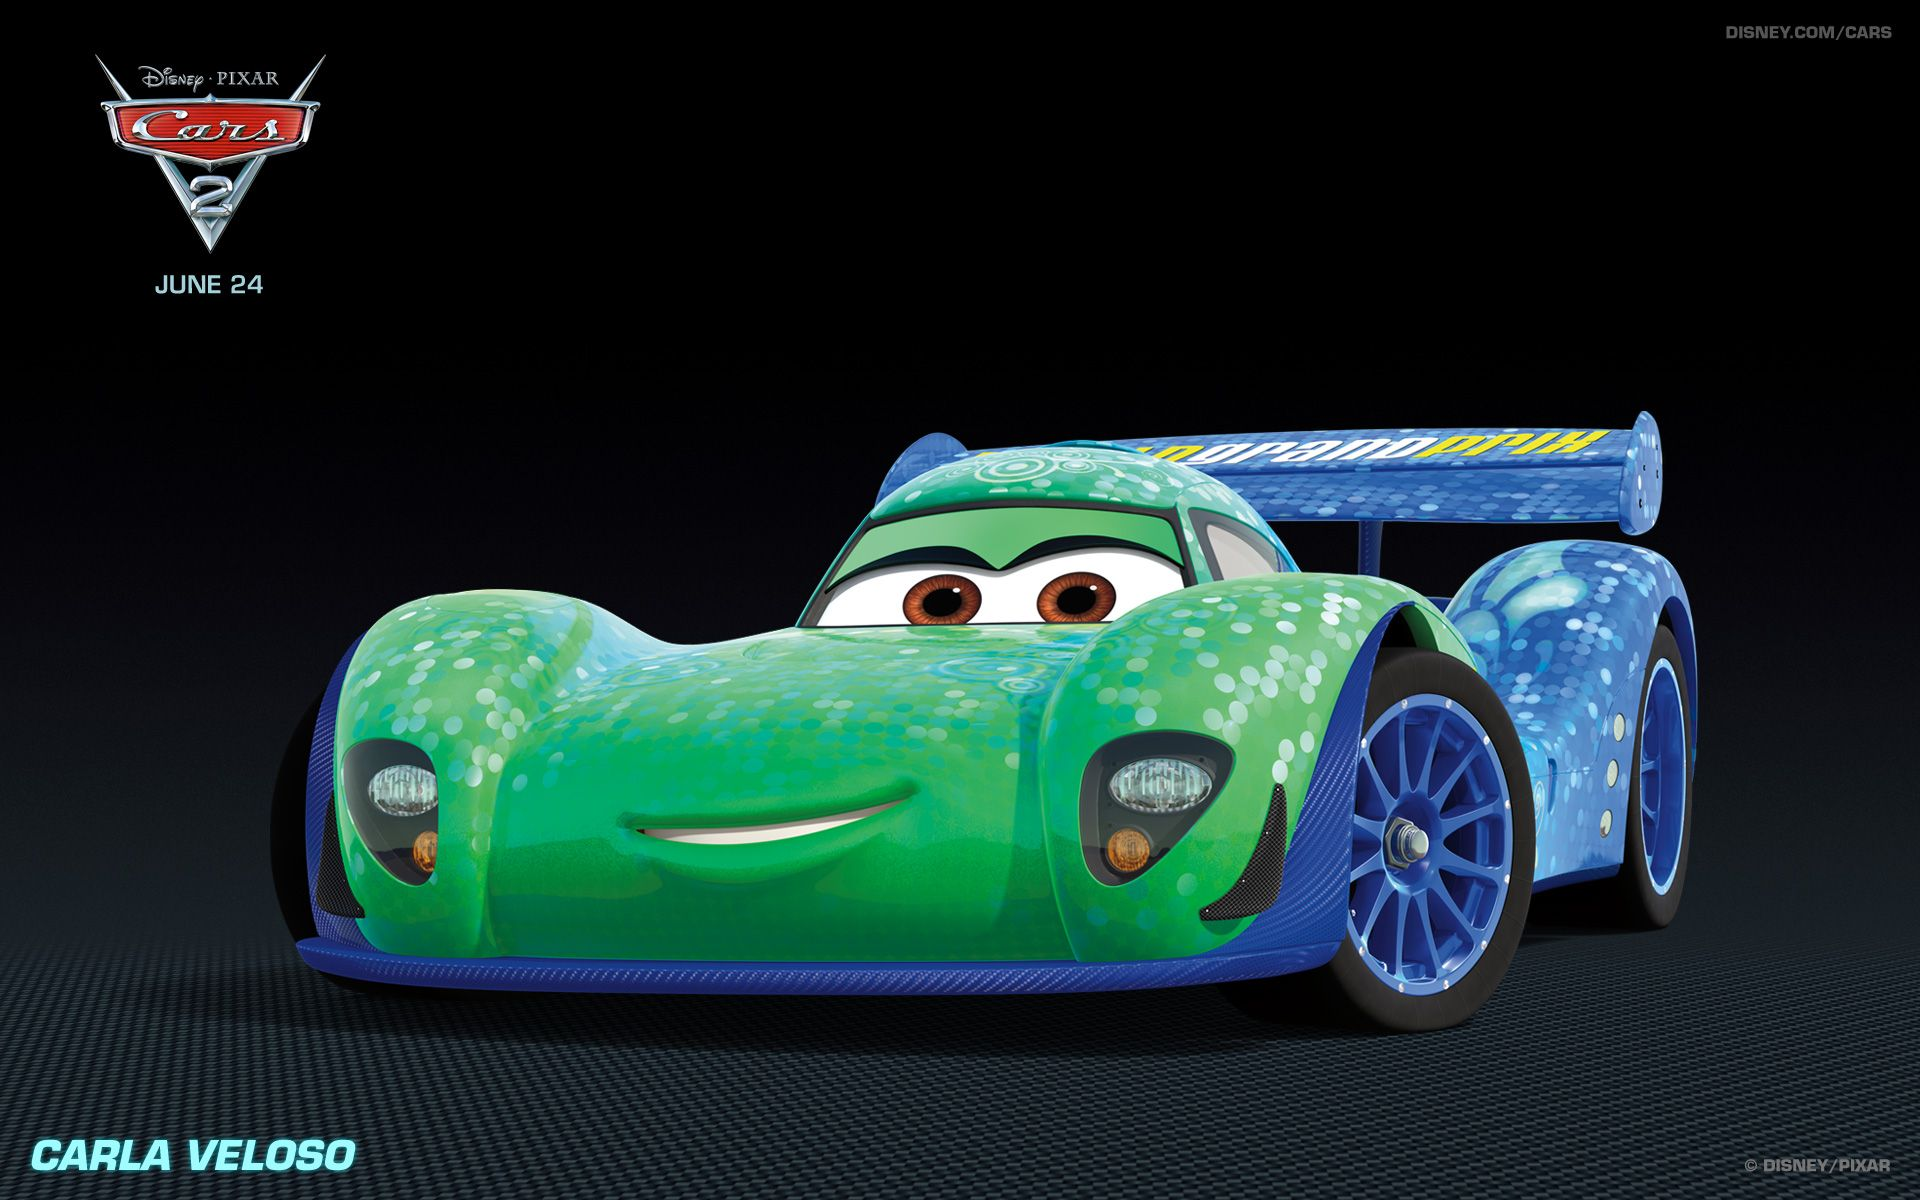 Carla Veloso The Brazilian Girl Race Car Were I A Car I D Have A Huge Crush On Her Actually I Do And I M Not Veloso Carros 2 Filme Disney